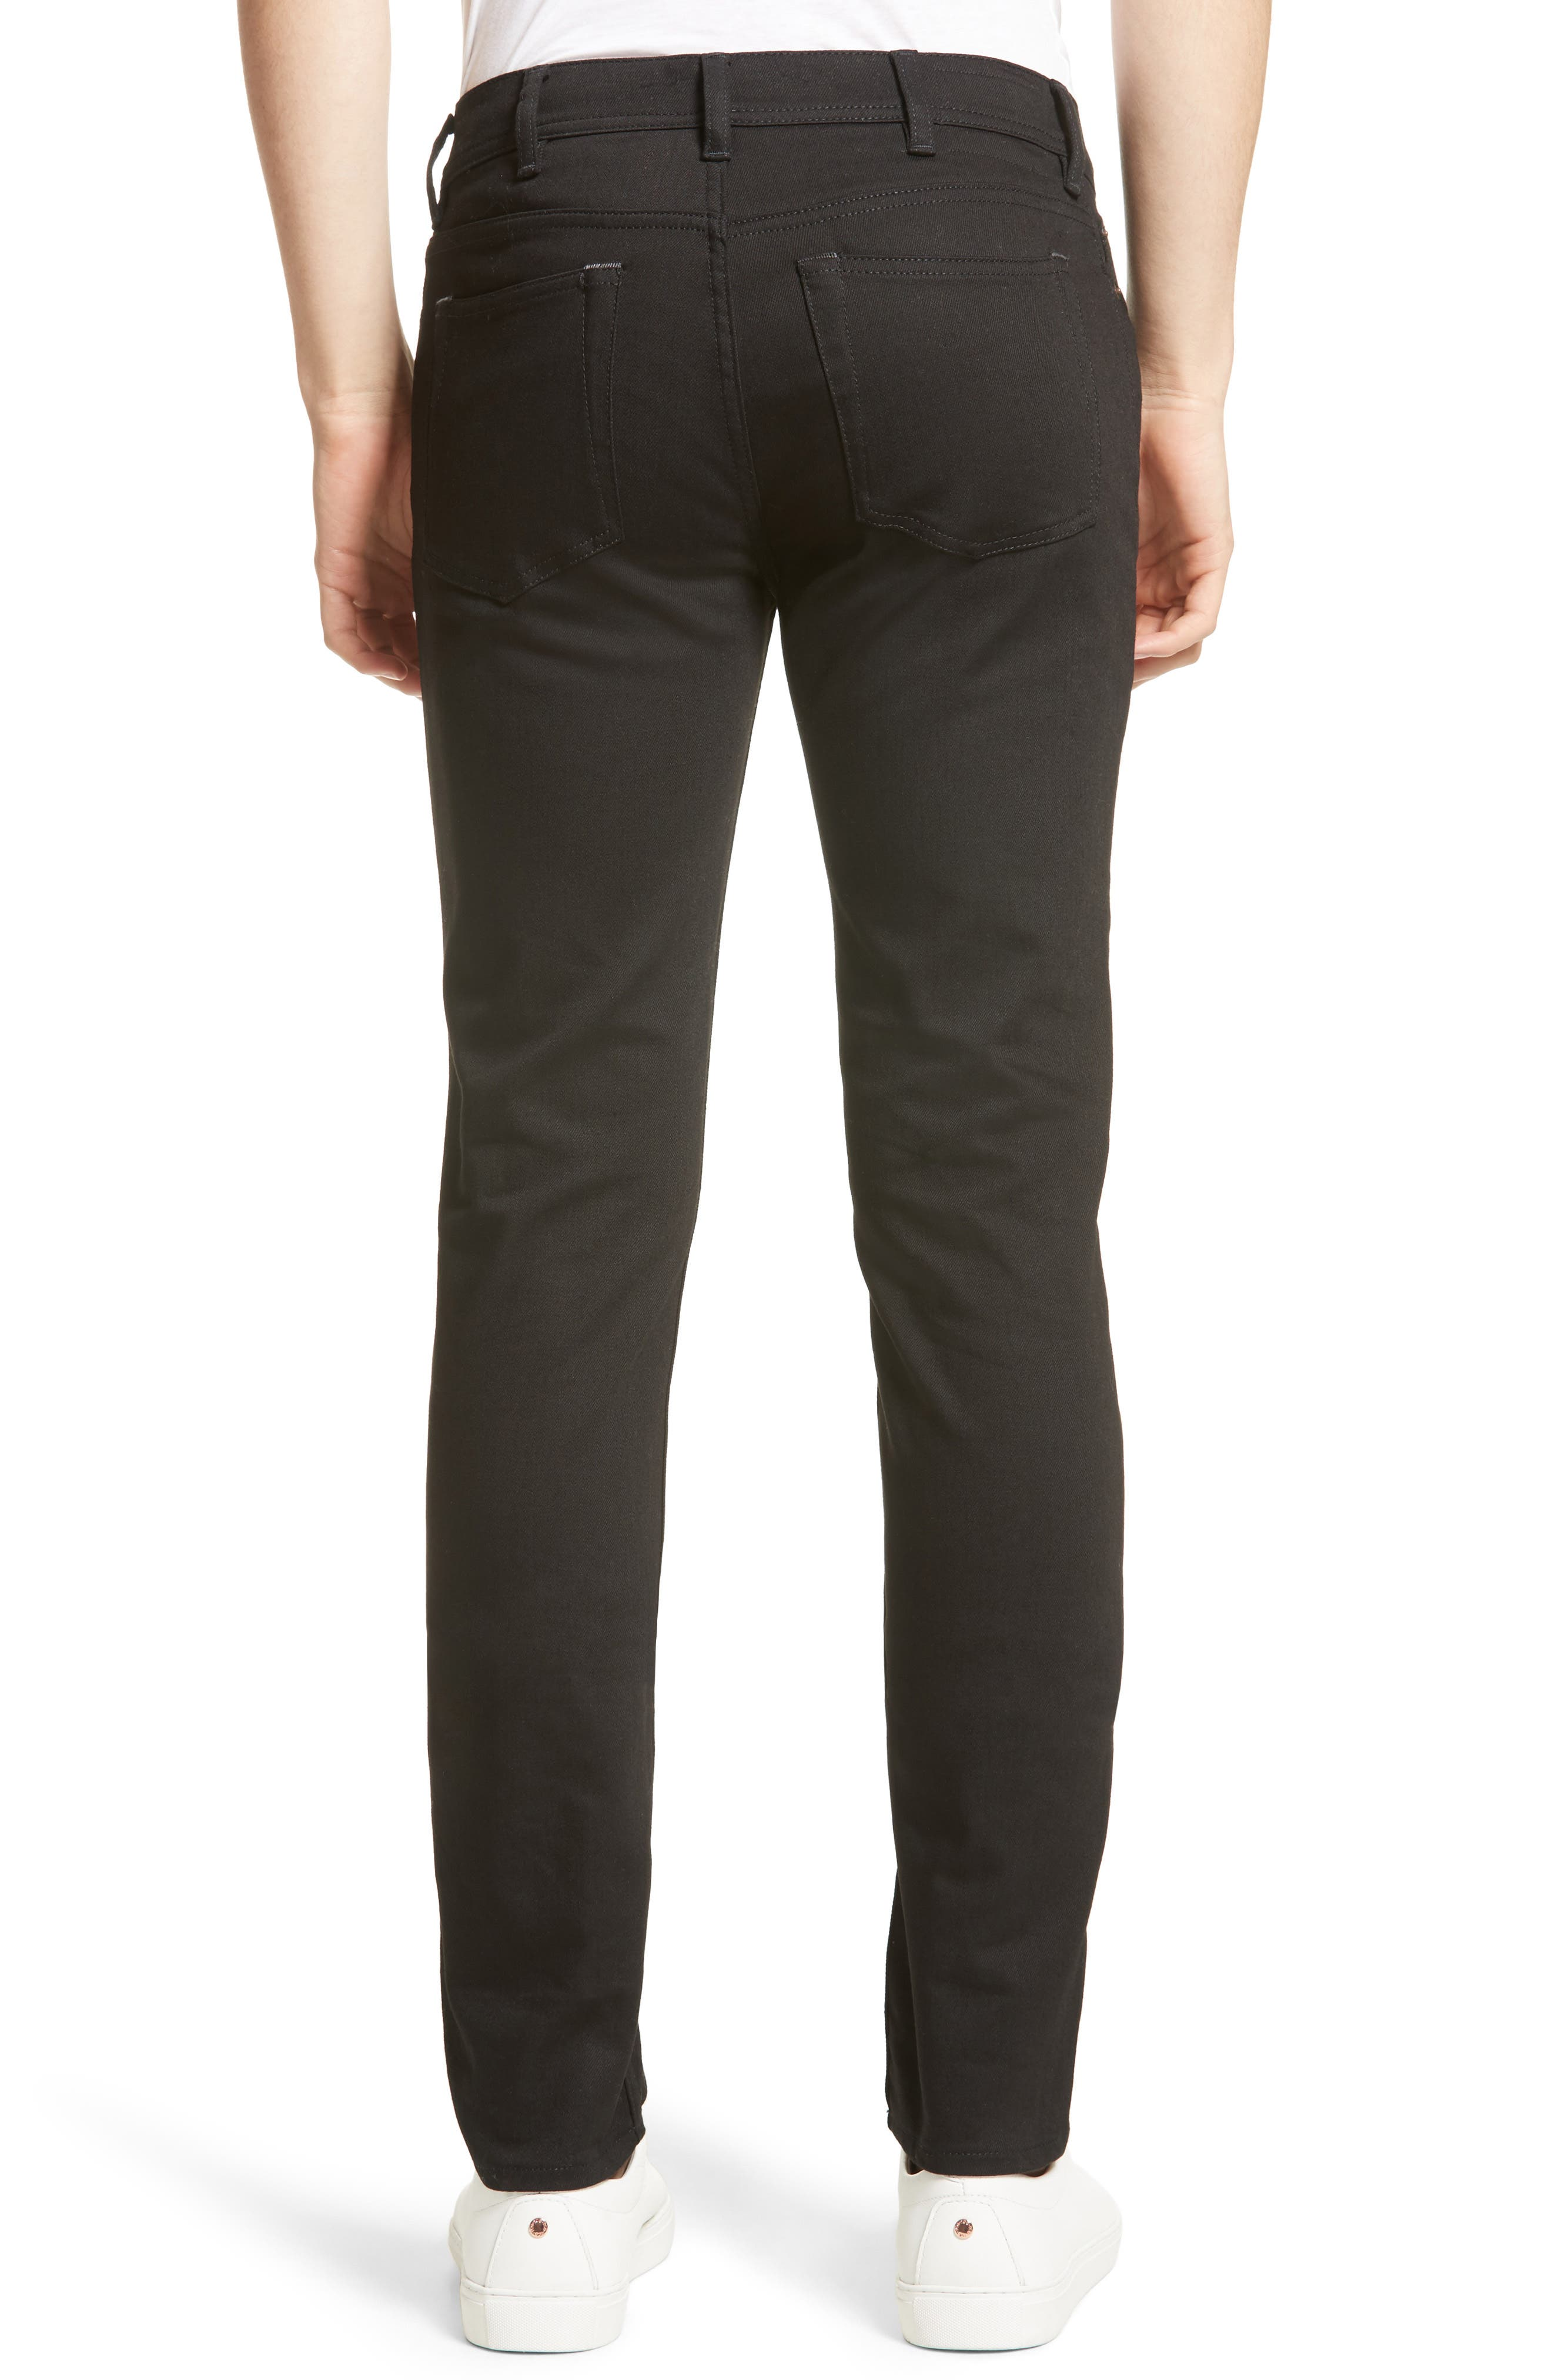 North Skinny Jeans,                             Alternate thumbnail 2, color,                             001